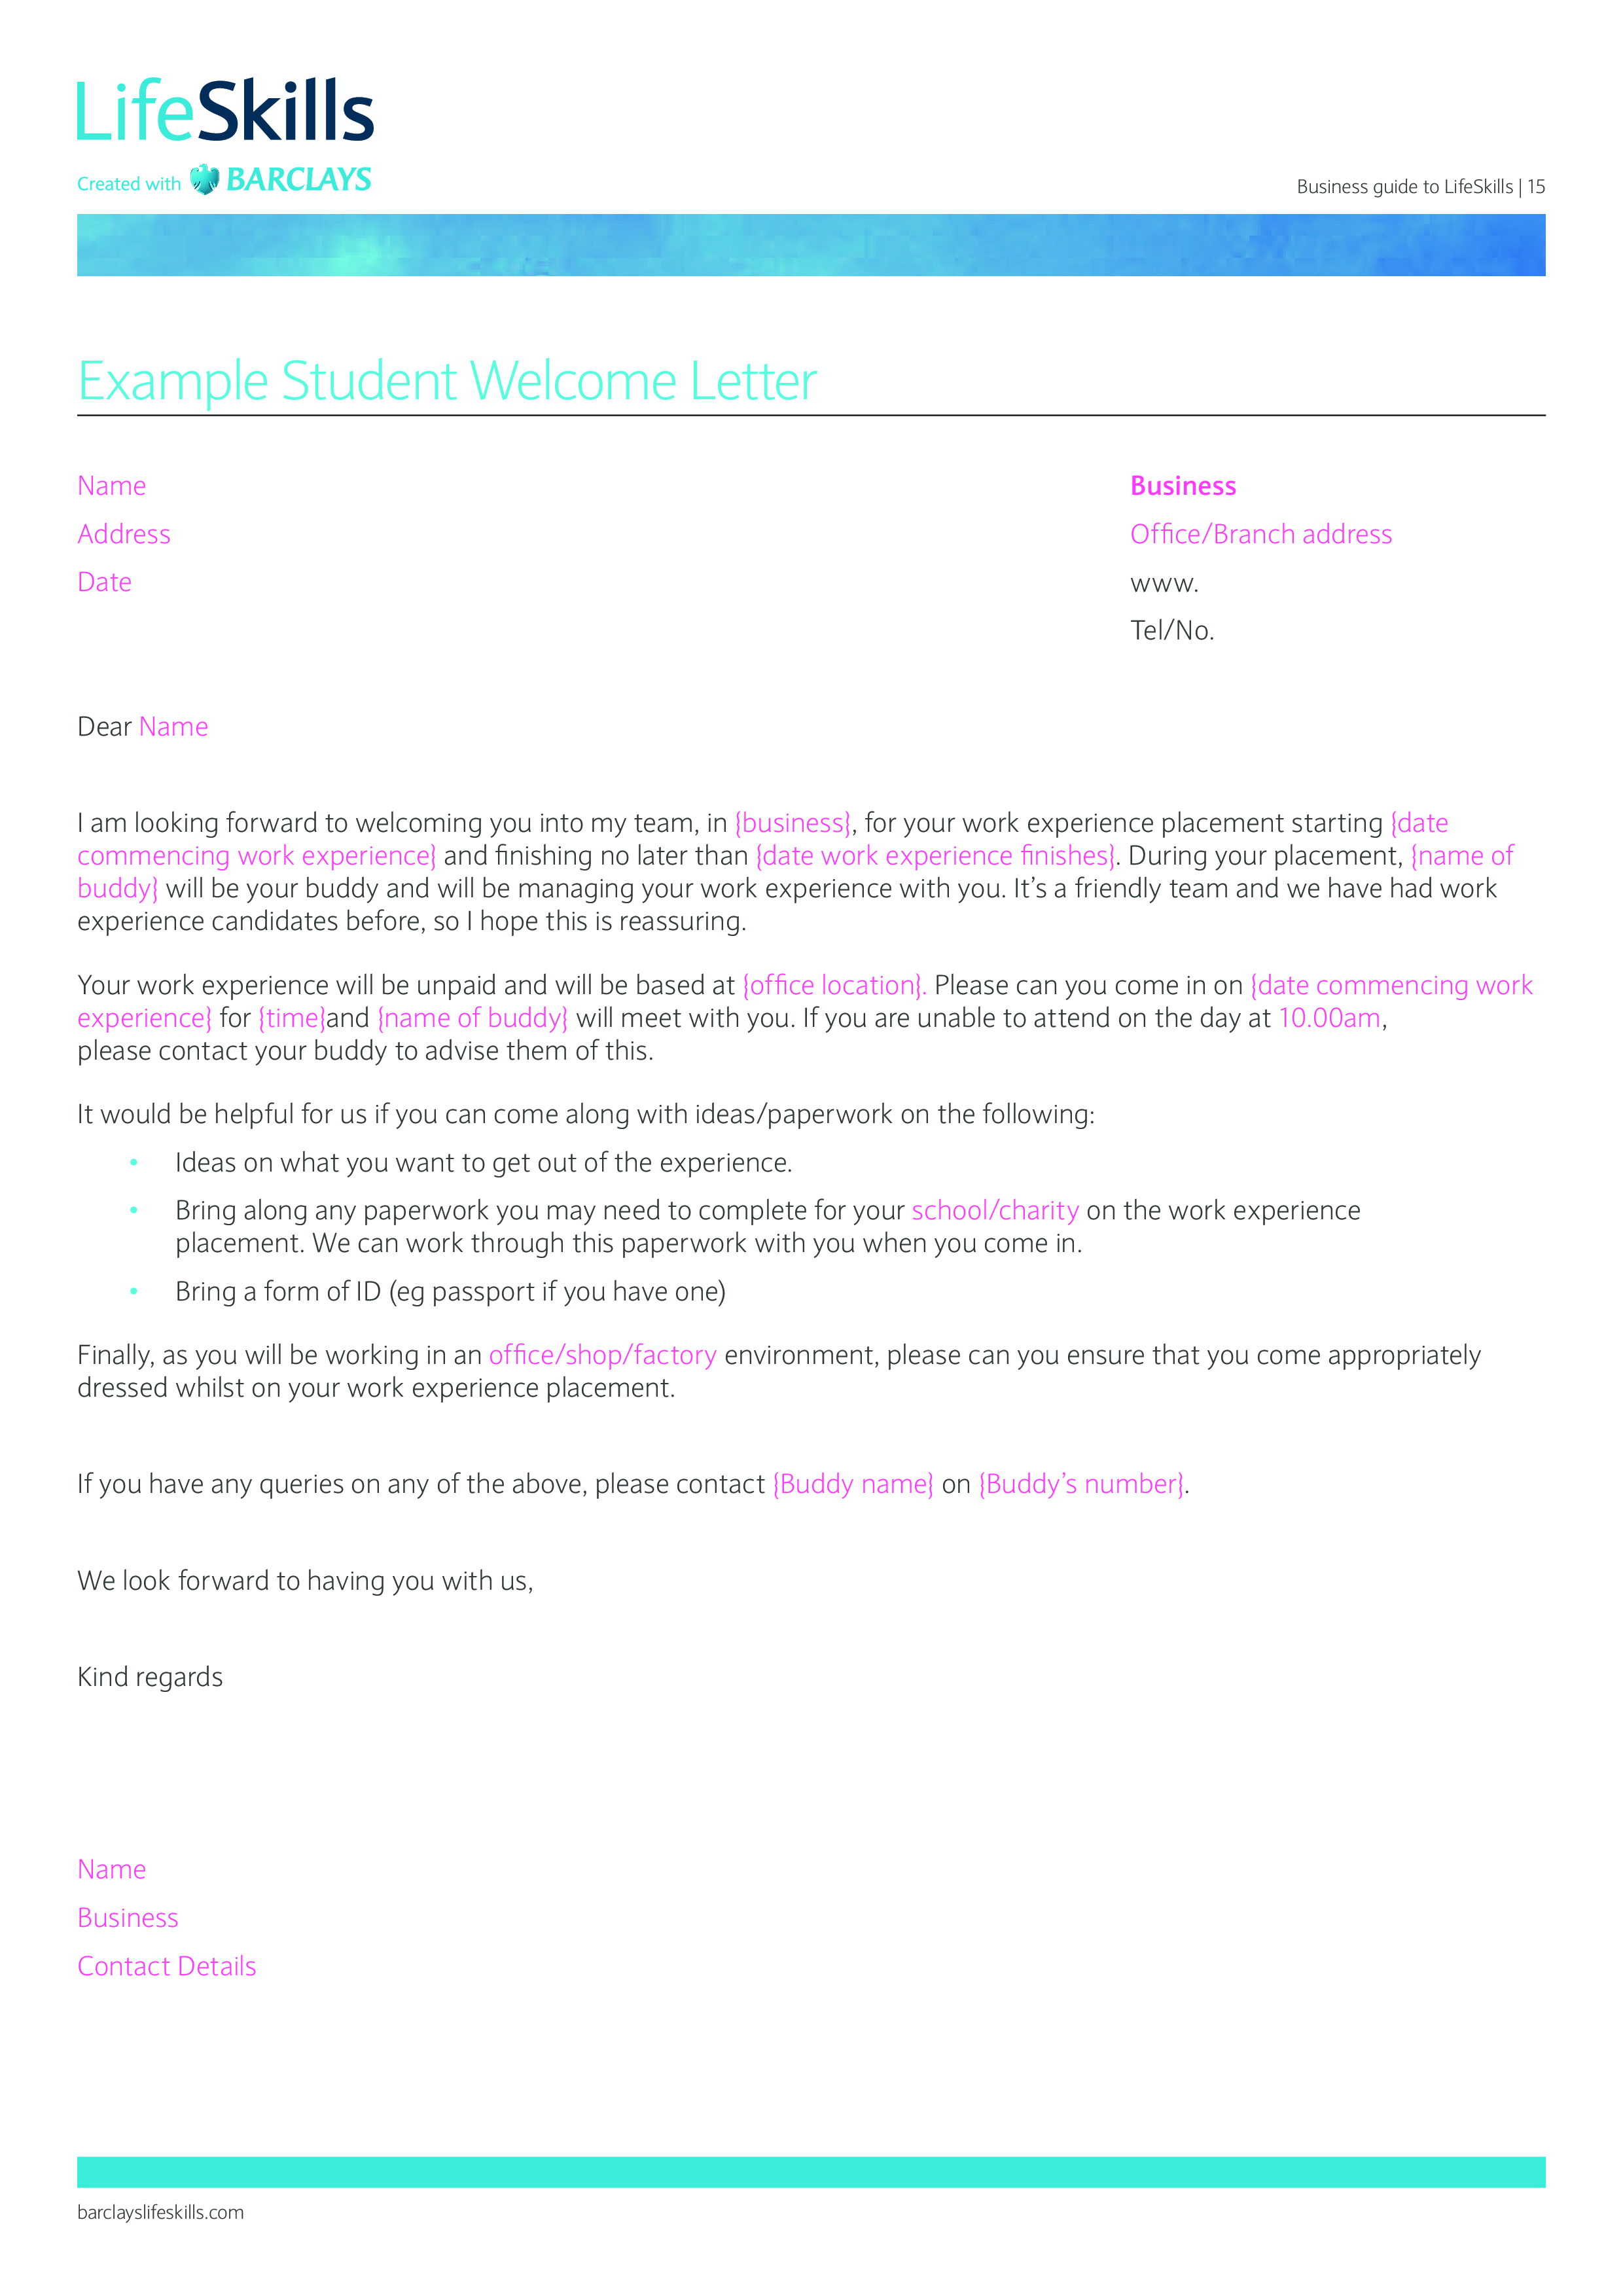 Student Welcome Letter Templates At